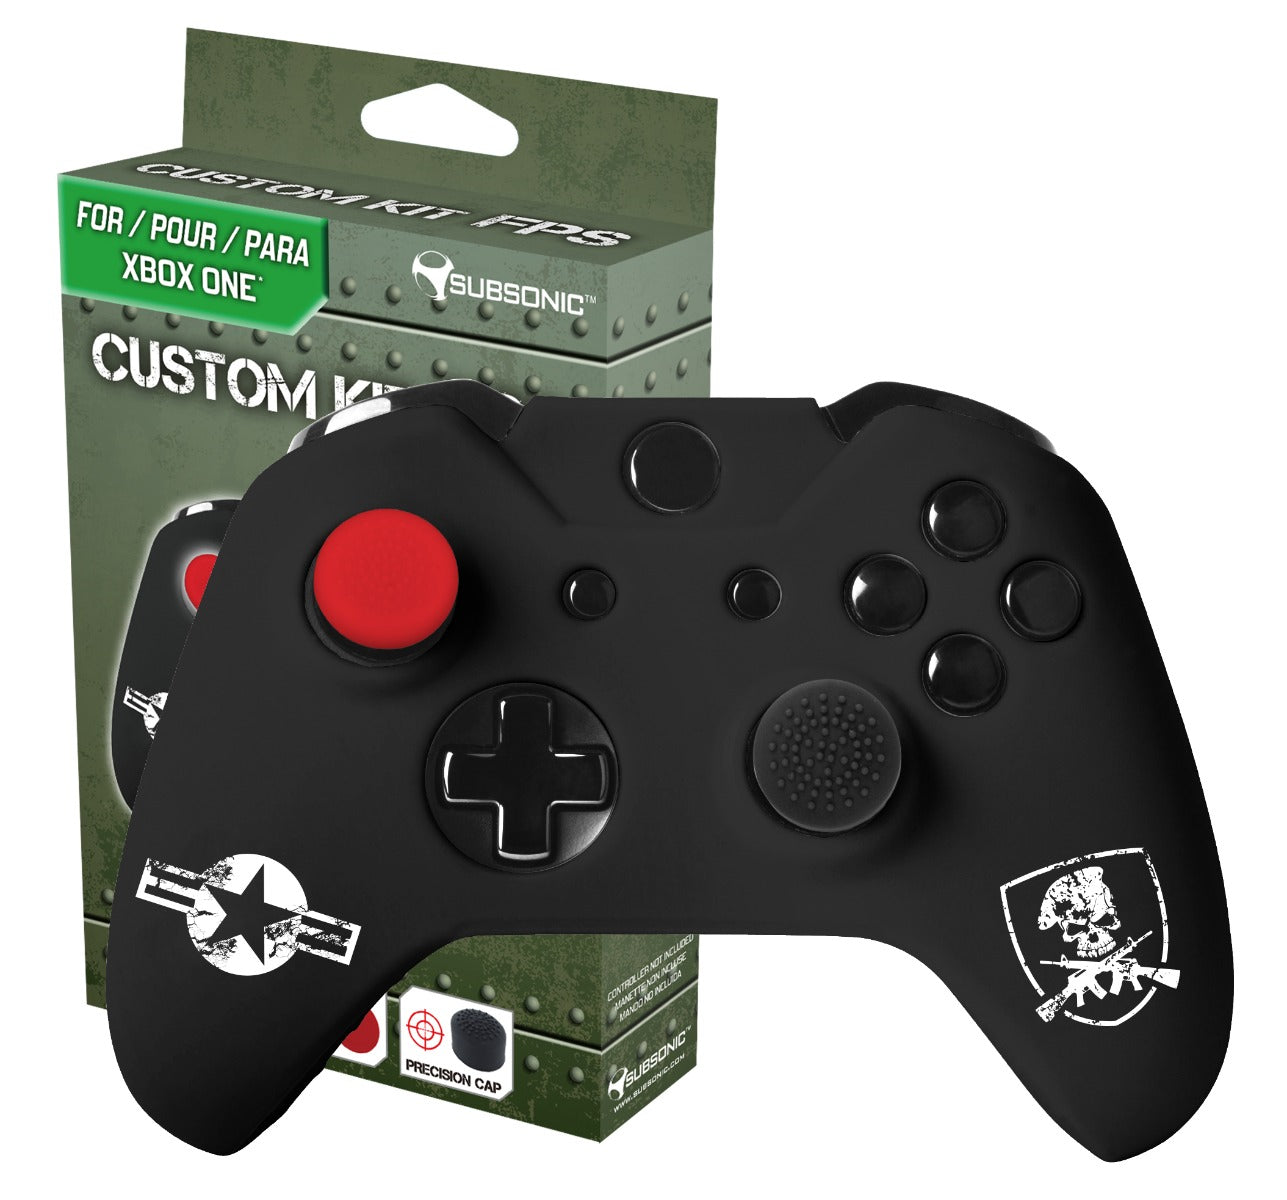 Subsonic Fps Edition Custom Gaming Kit For Xbox One Controller